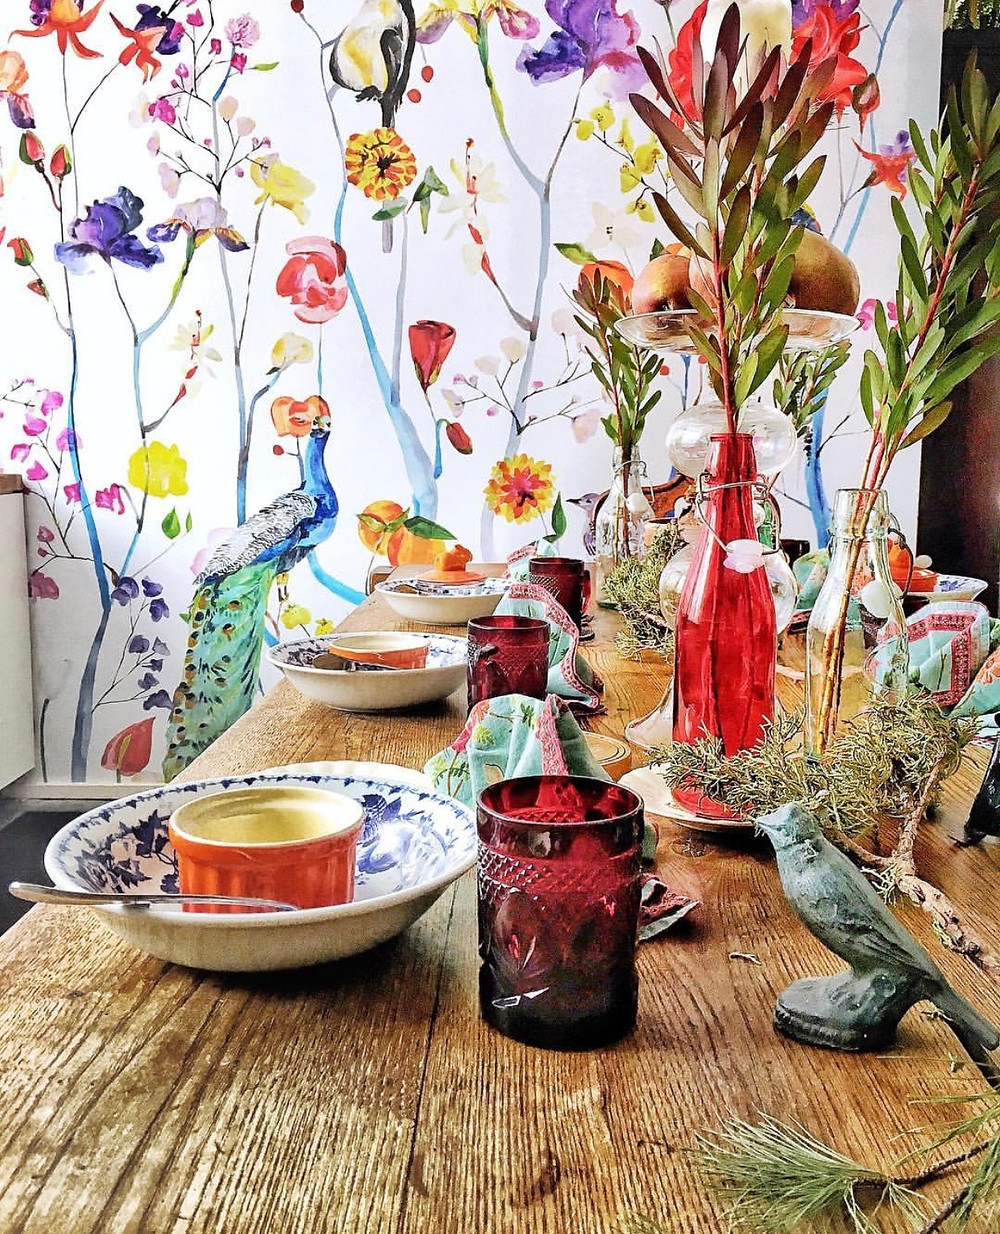 floral wallpaper, red vintage cups, table setting with a whimsical style